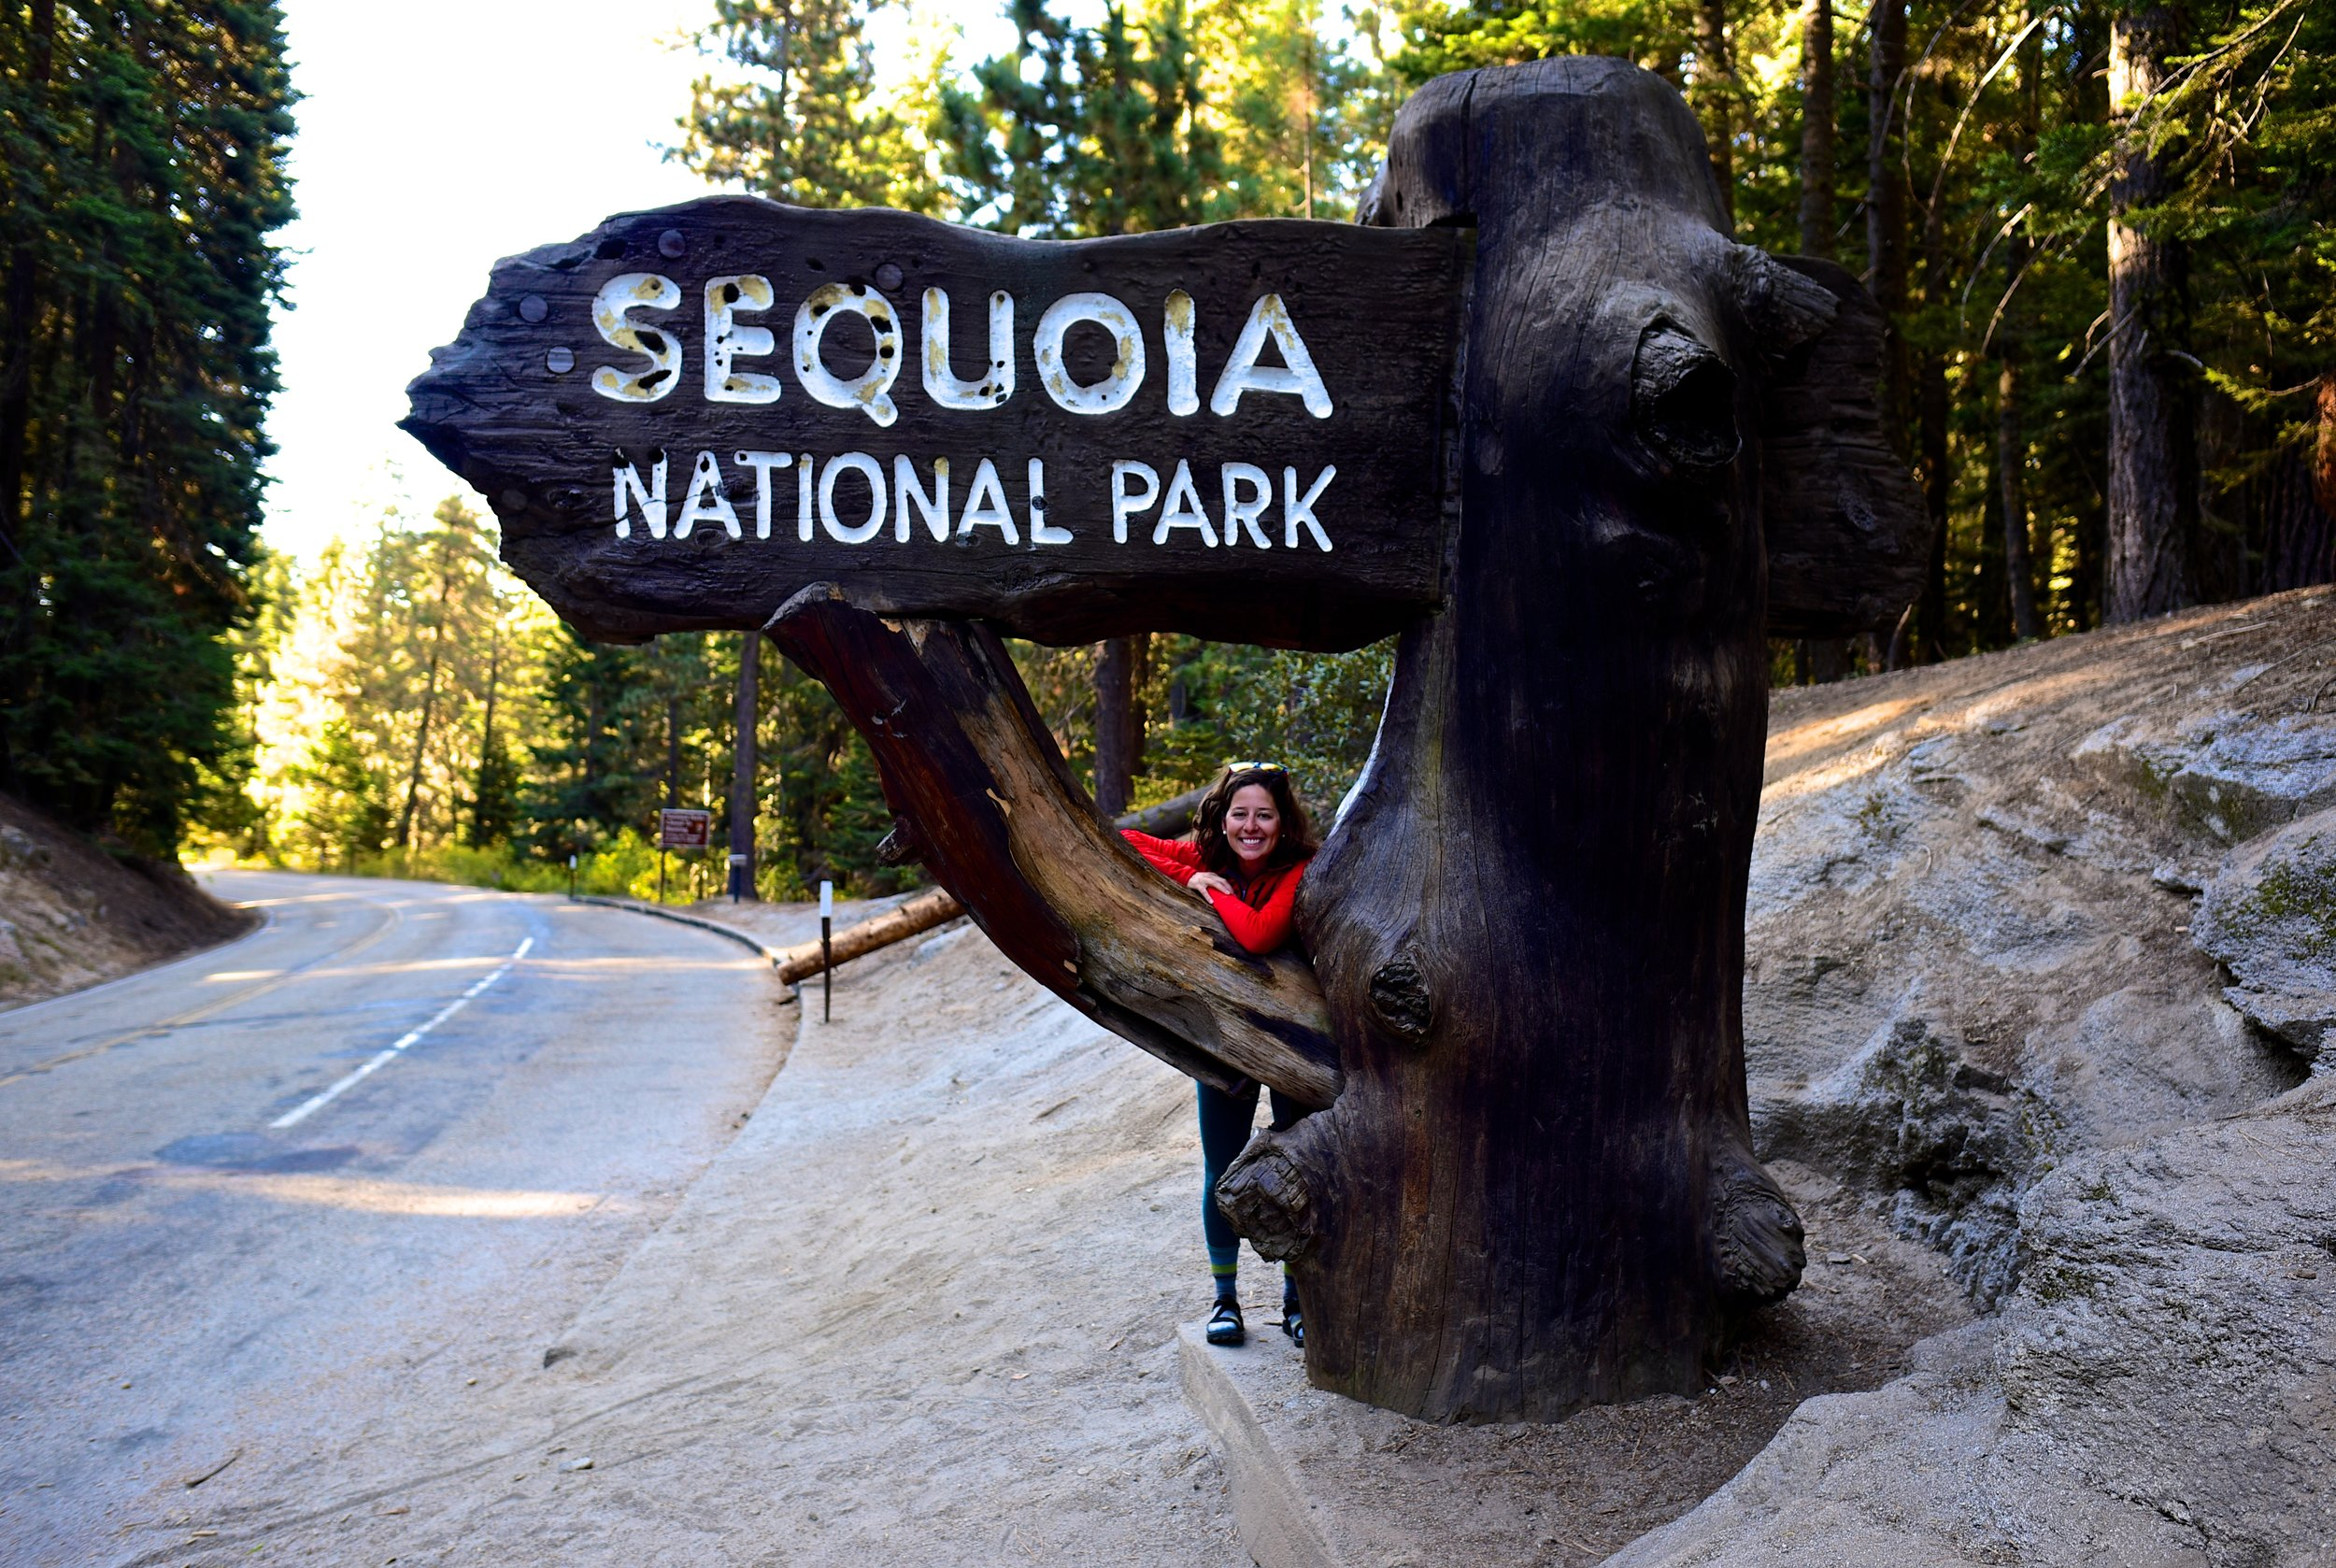 Entering Sequoia National Park